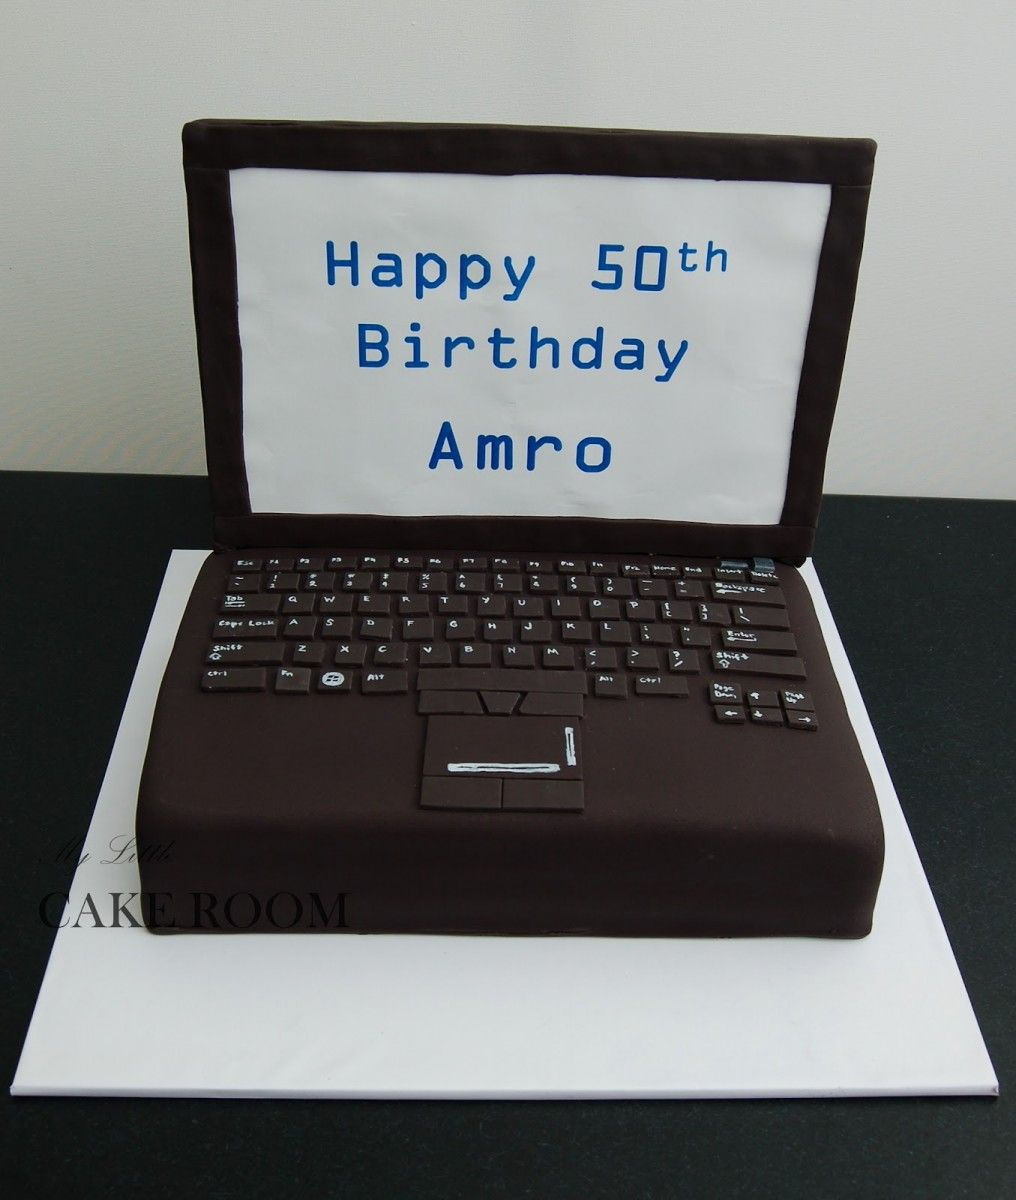 10 Awesome Computer Cake Decorating Ideas 8 Cake Design ...